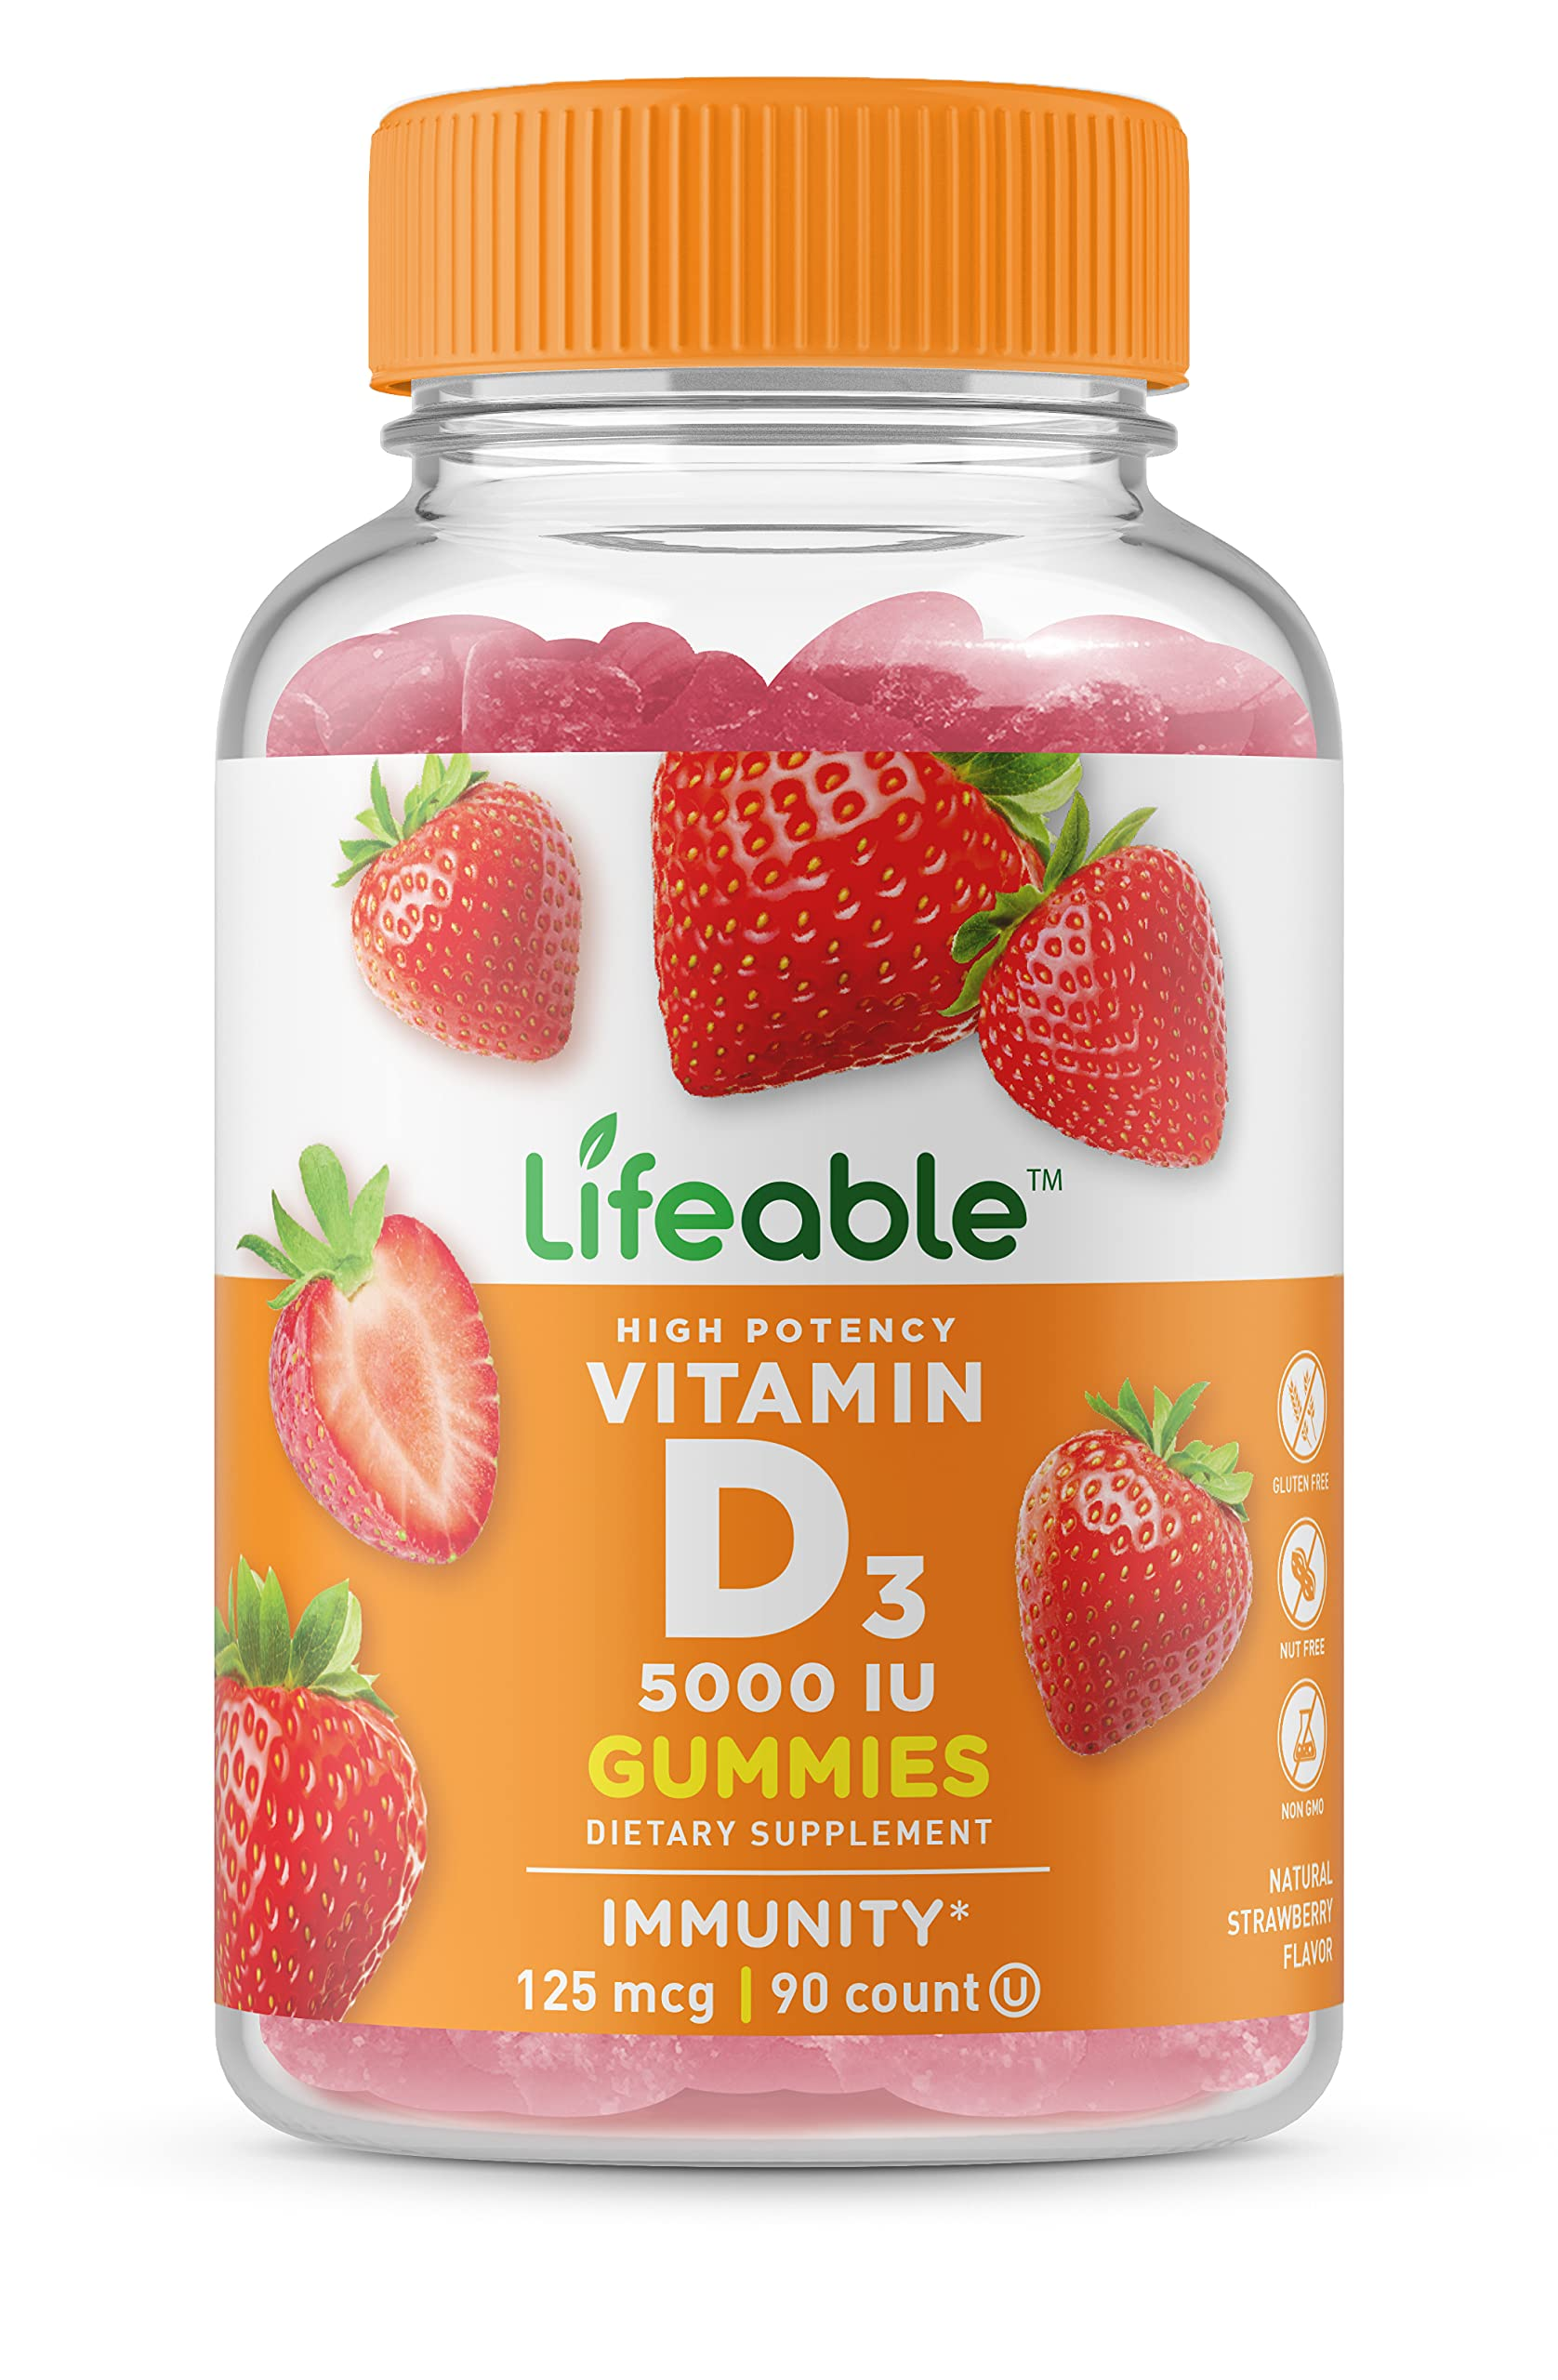 Lifeable Vitamin D 5000 IU High Potency Gummies – Tooth Friendly – Vegetarian, GMO-Free & Gluten Free – Great Tasting Mixed Berry Flavor Pectin Chews – Dietary Supplement – 90 Jellies [45 Doses]